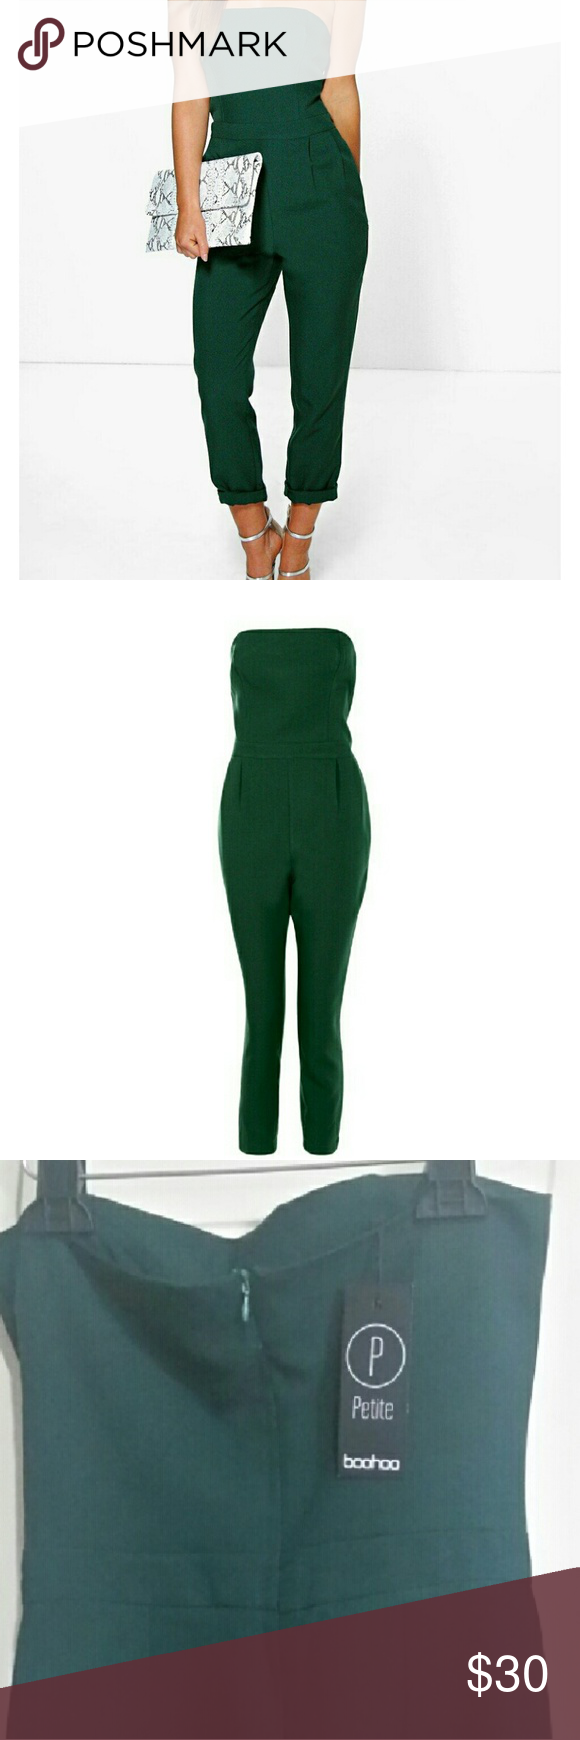 Bandeau Tailored Jumpsuit Brand new with tag. I'm 5'0 and the hits perfectly st my ankles. True to size. Pockets on the side. Boohoo Petite Pants Jumpsuits & Rompers